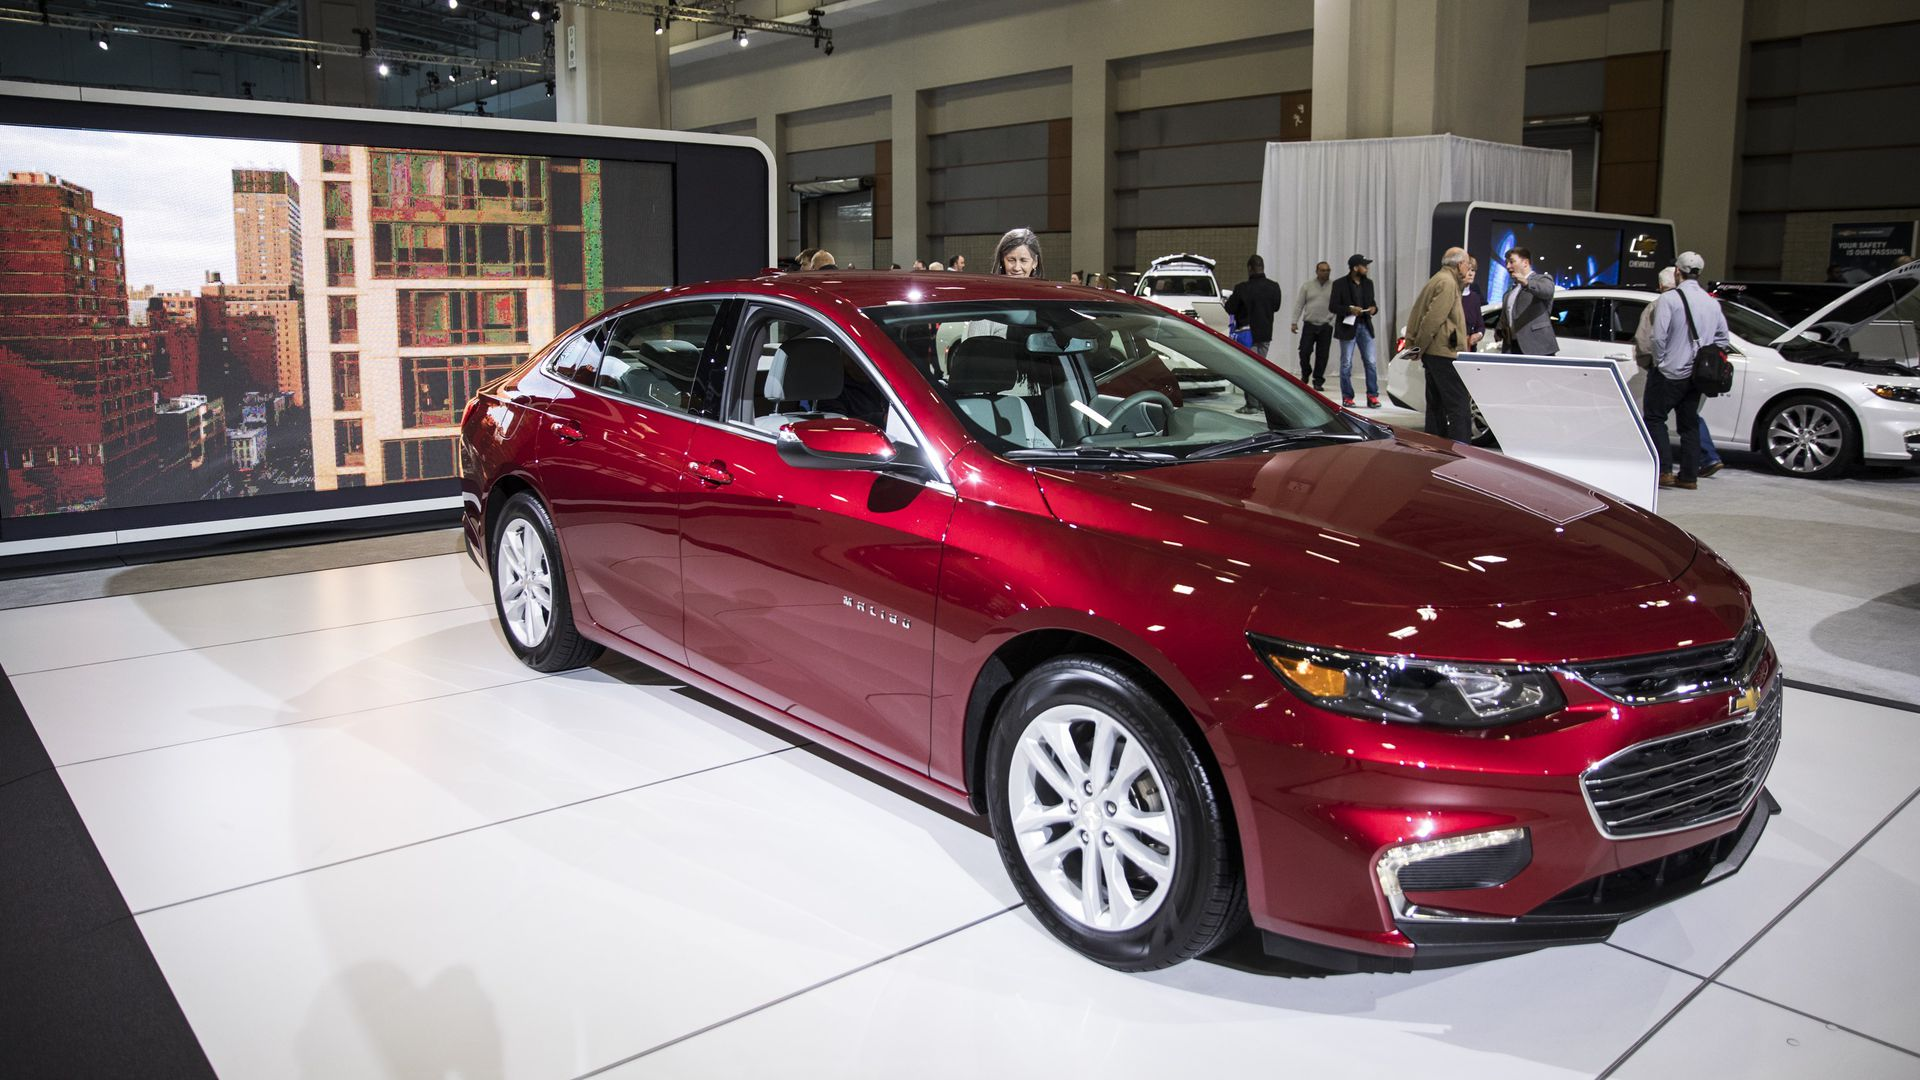 A 2017 Chevy Malibu at the 2017 Washington Auto Show in Washington, USA on February 3, 2017. (Photo by Samuel Corum/Anadolu Agency/Getty Images)